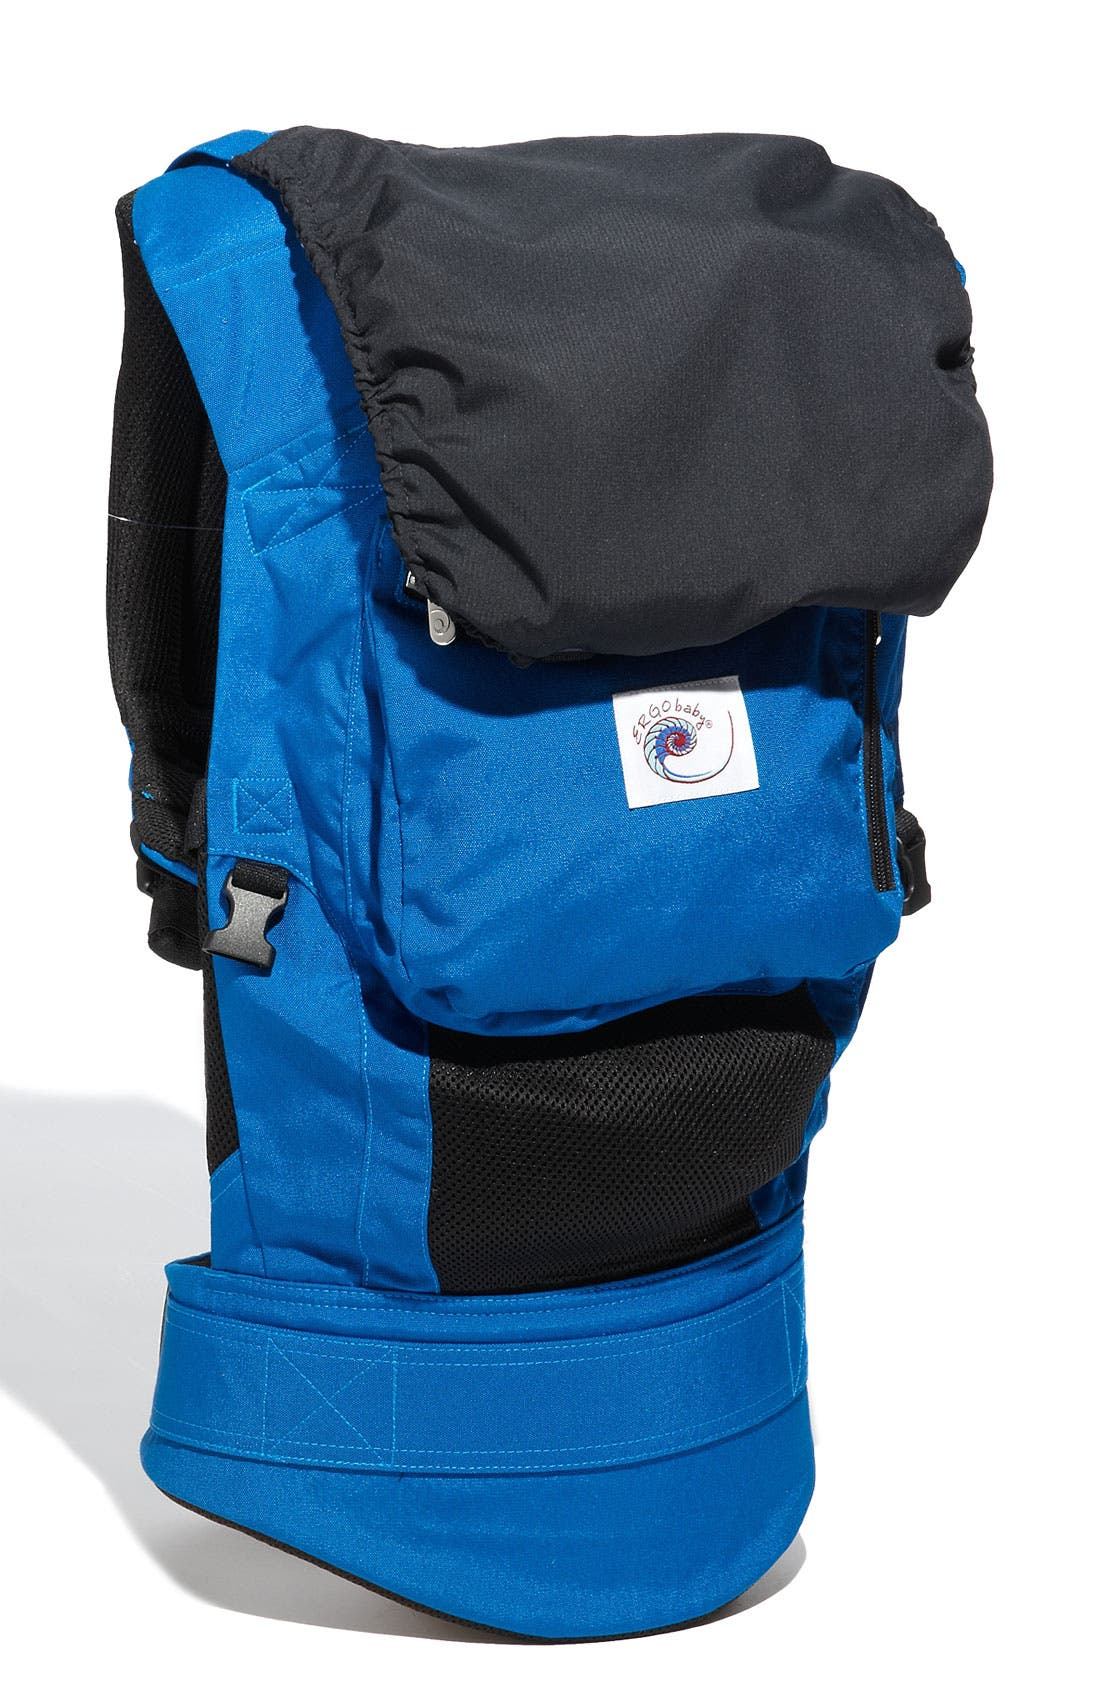 Alternate Image 1 Selected - ERGObaby 'Performance' Baby Carrier